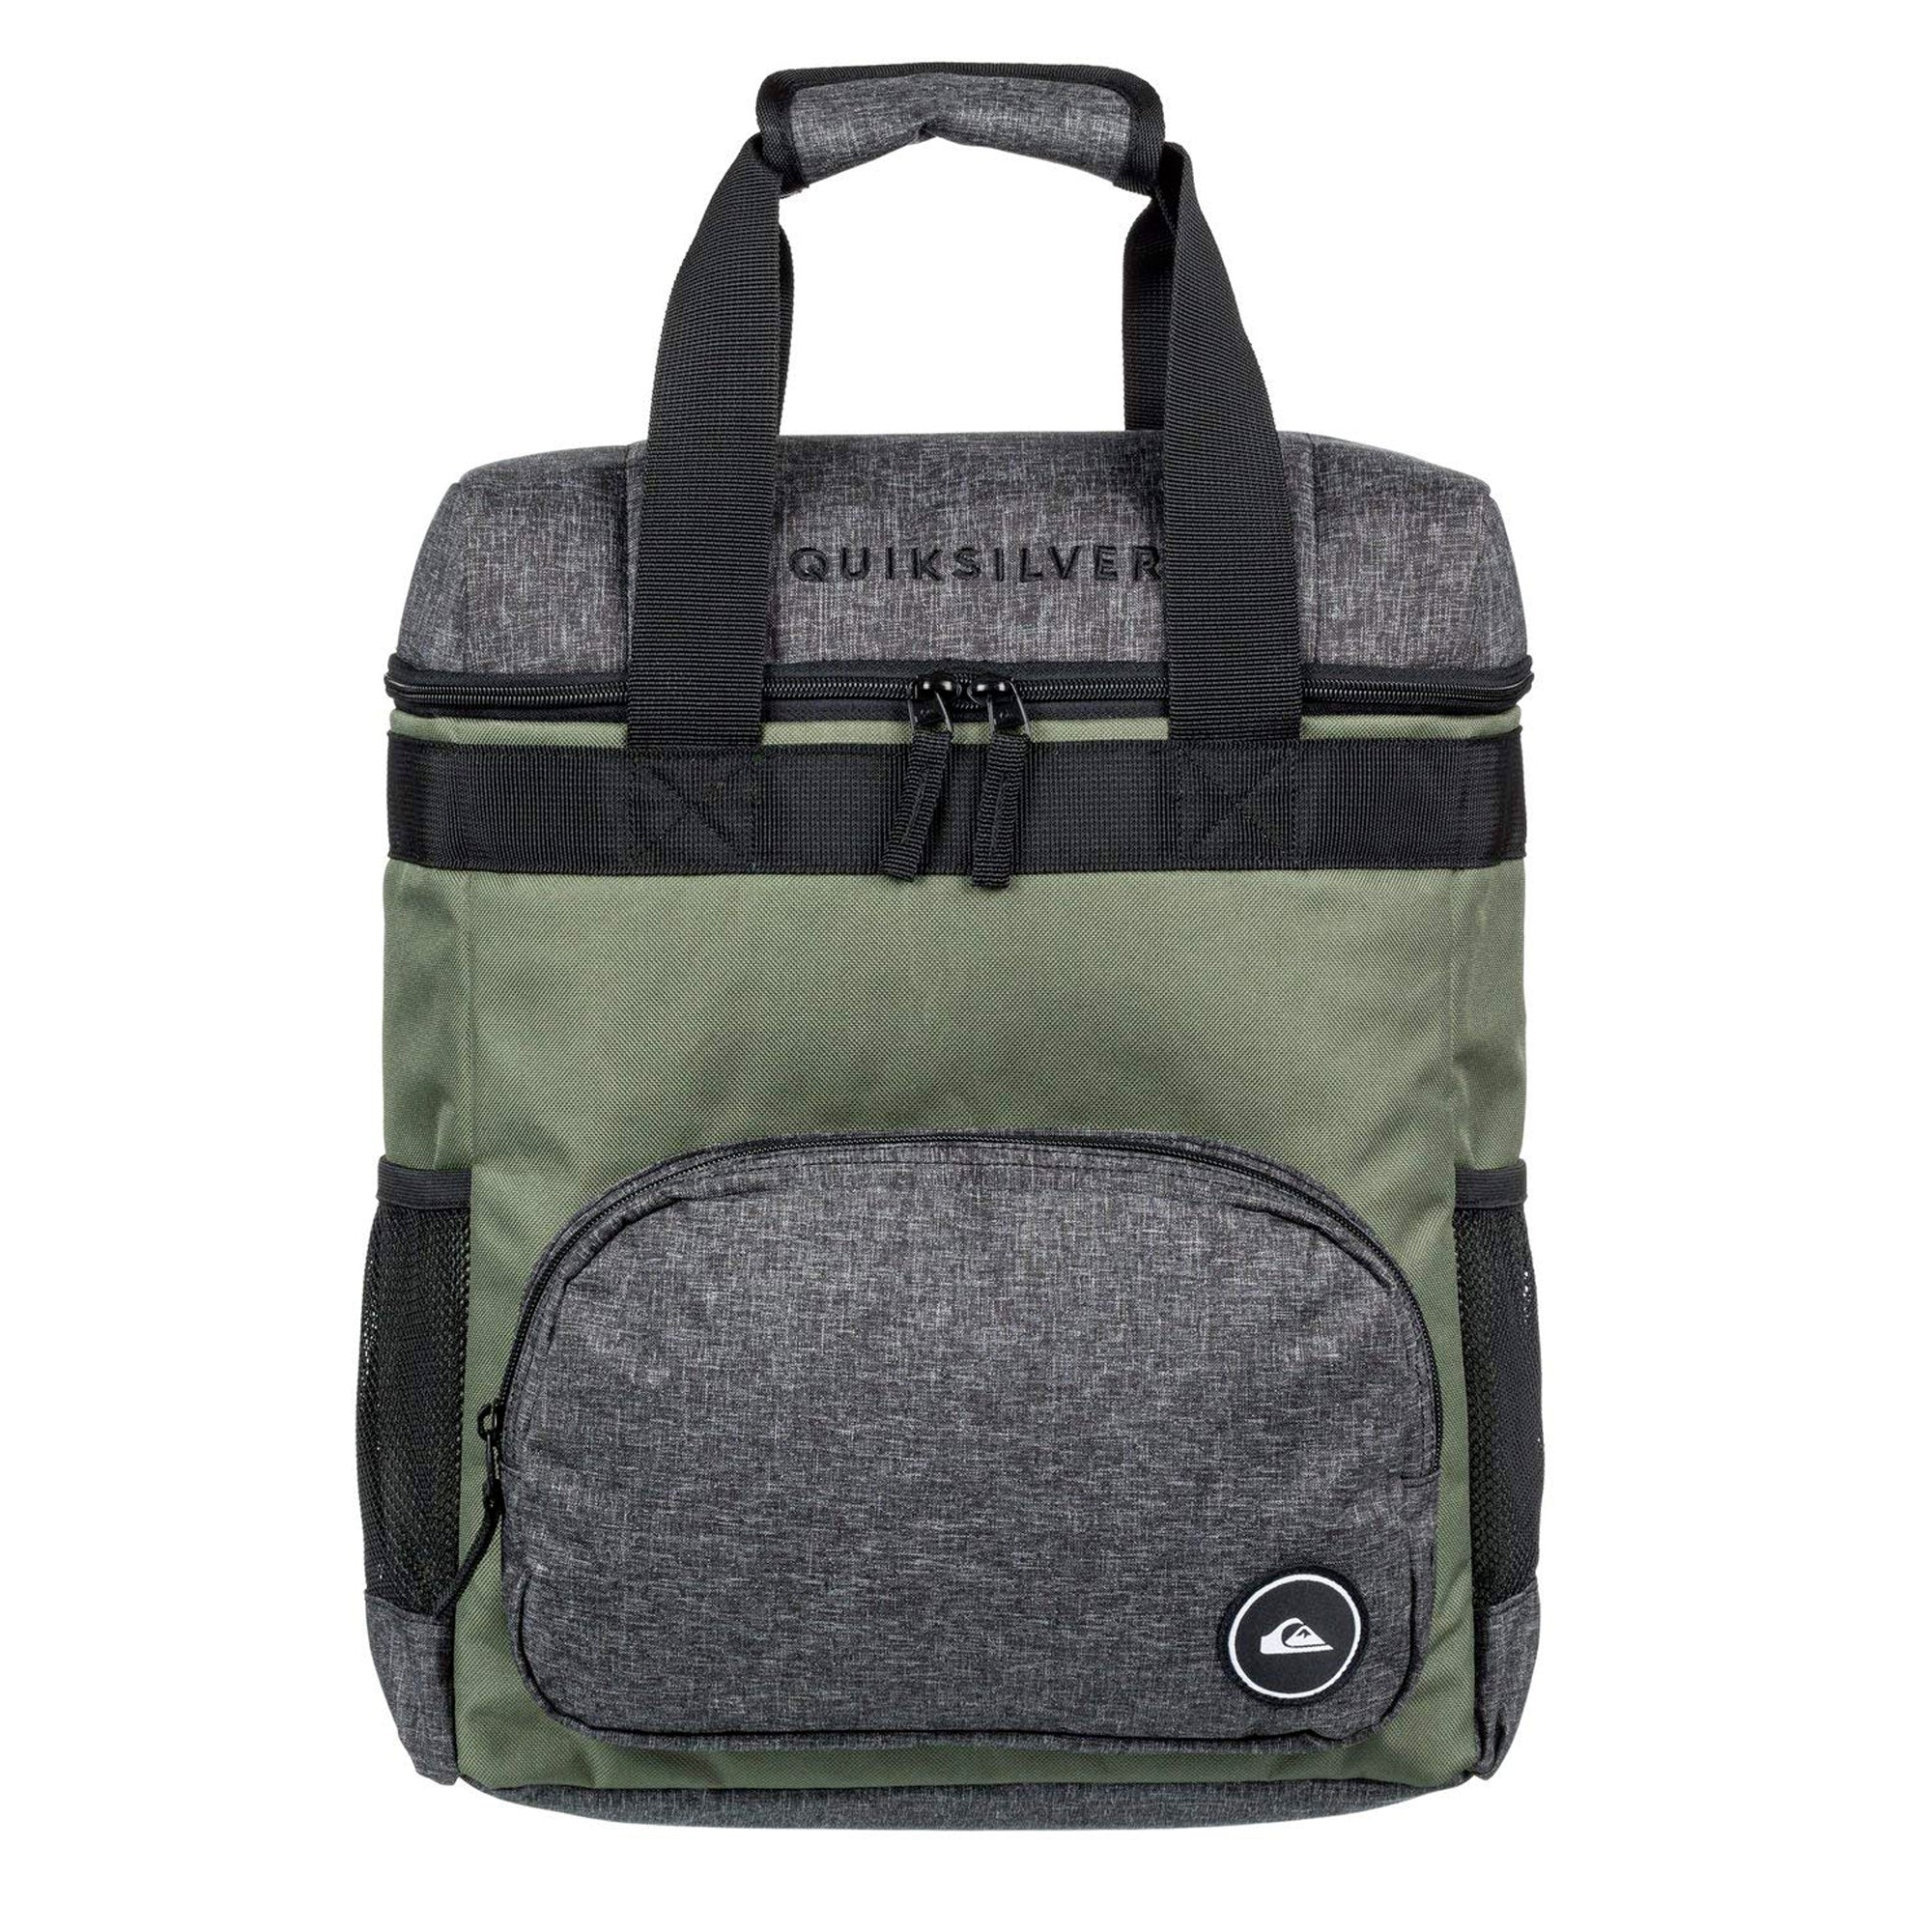 Quiksilver Pactor 25L Cooler Backpack